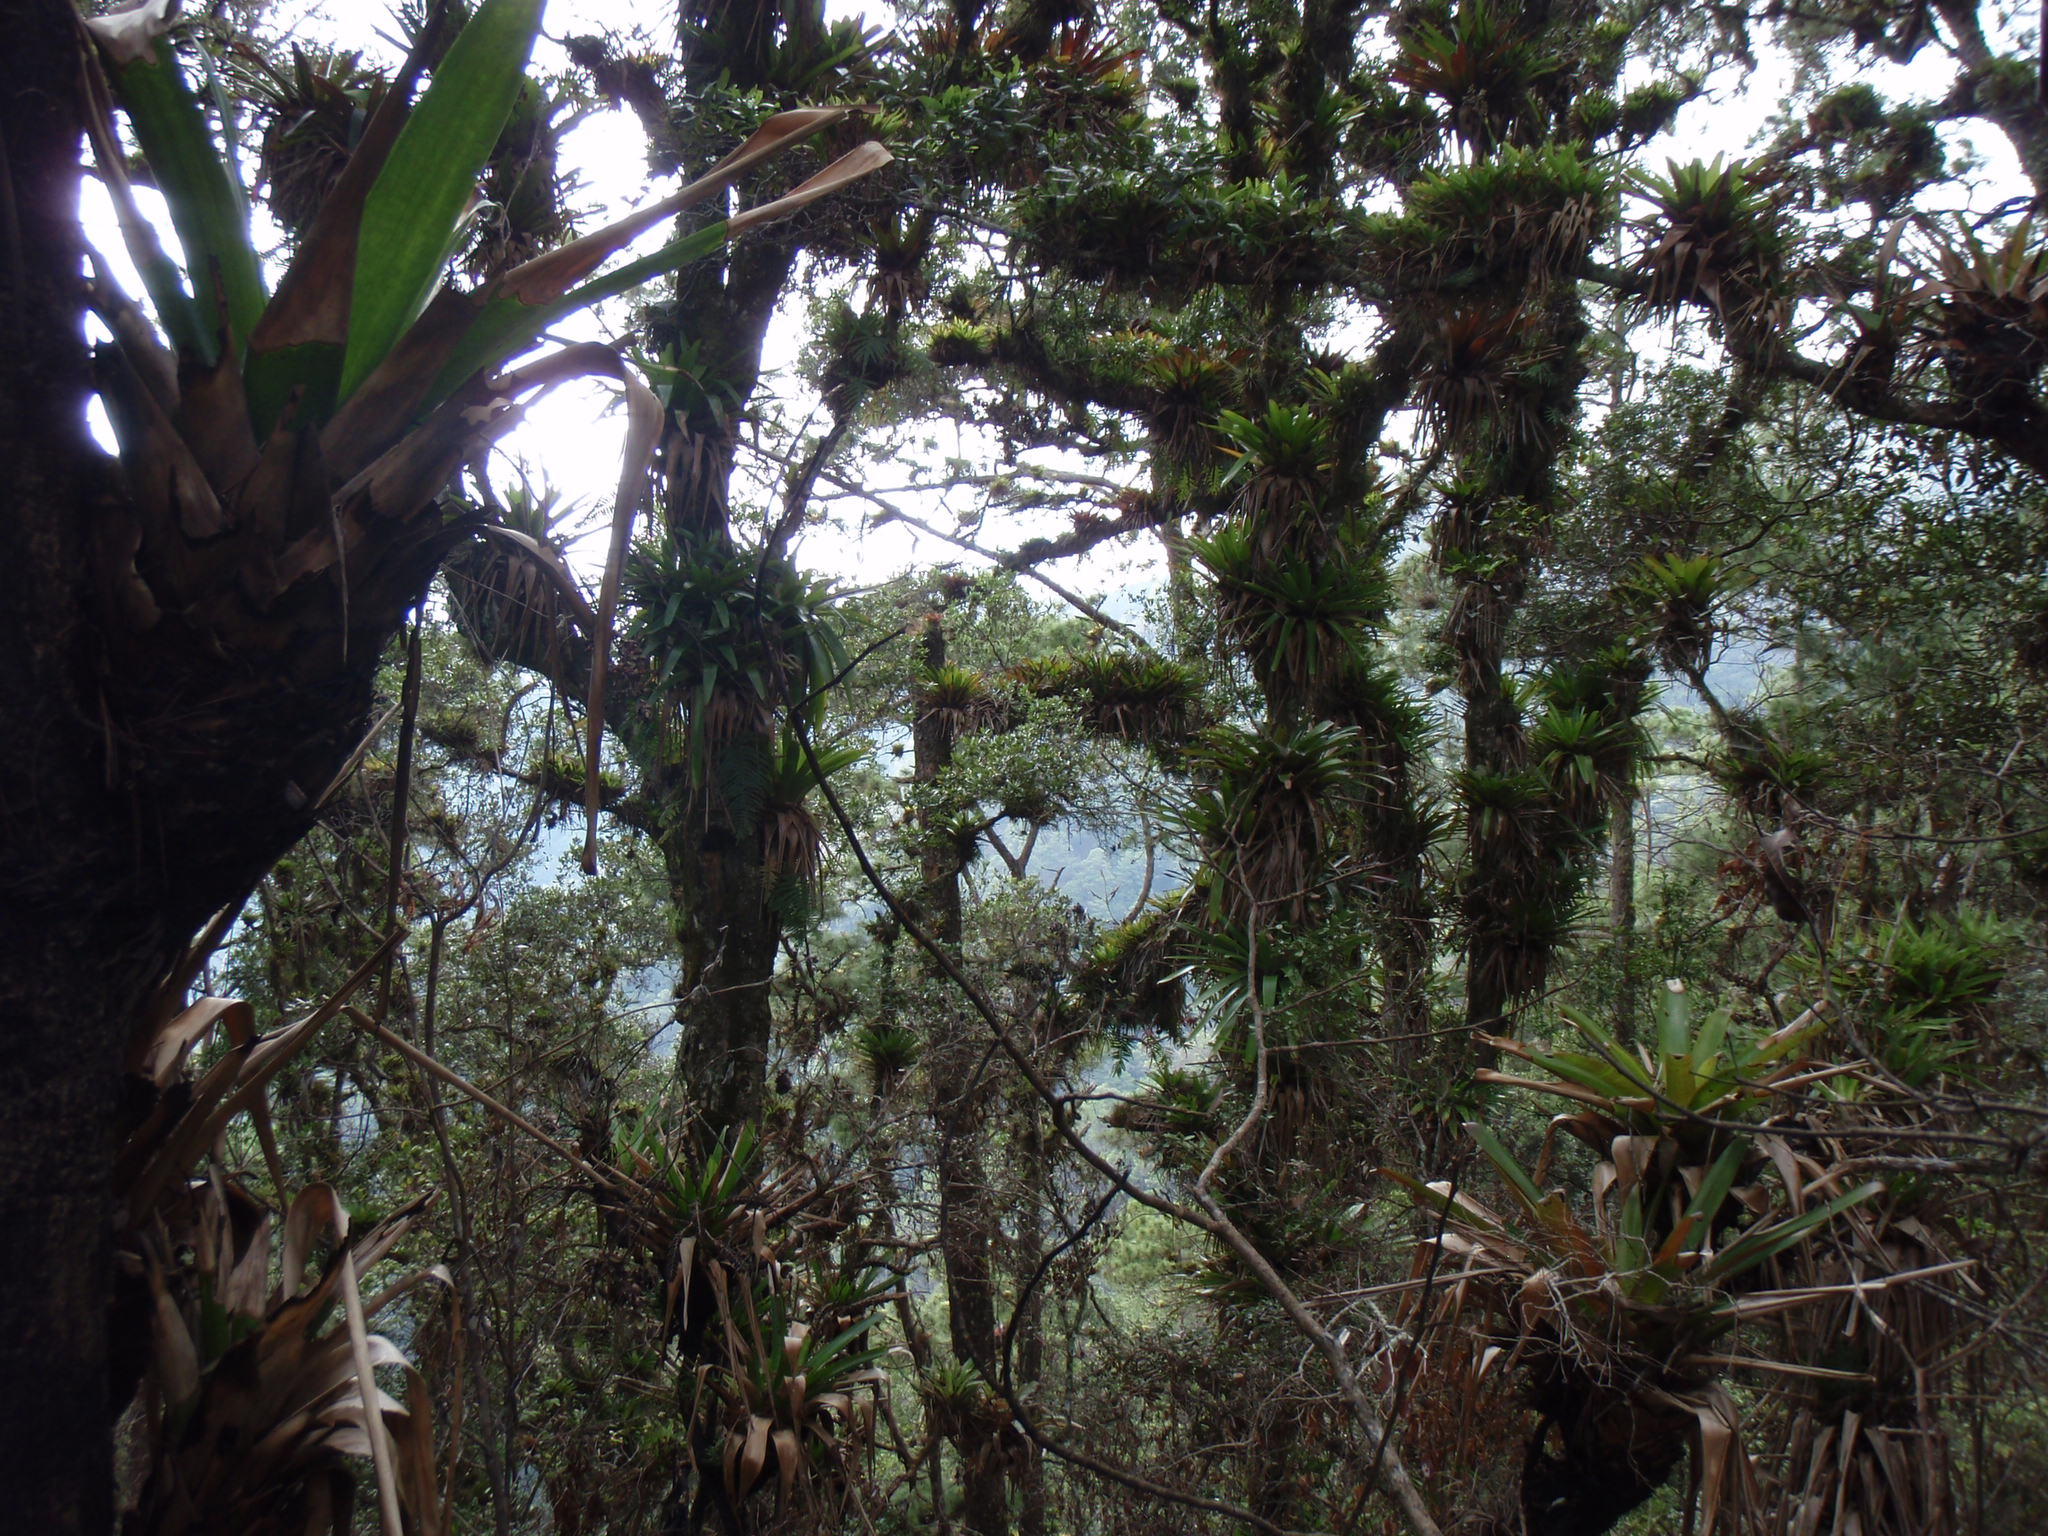 Ascent through dense cloud forest in Celaque National Park up to Cerro Las Minas